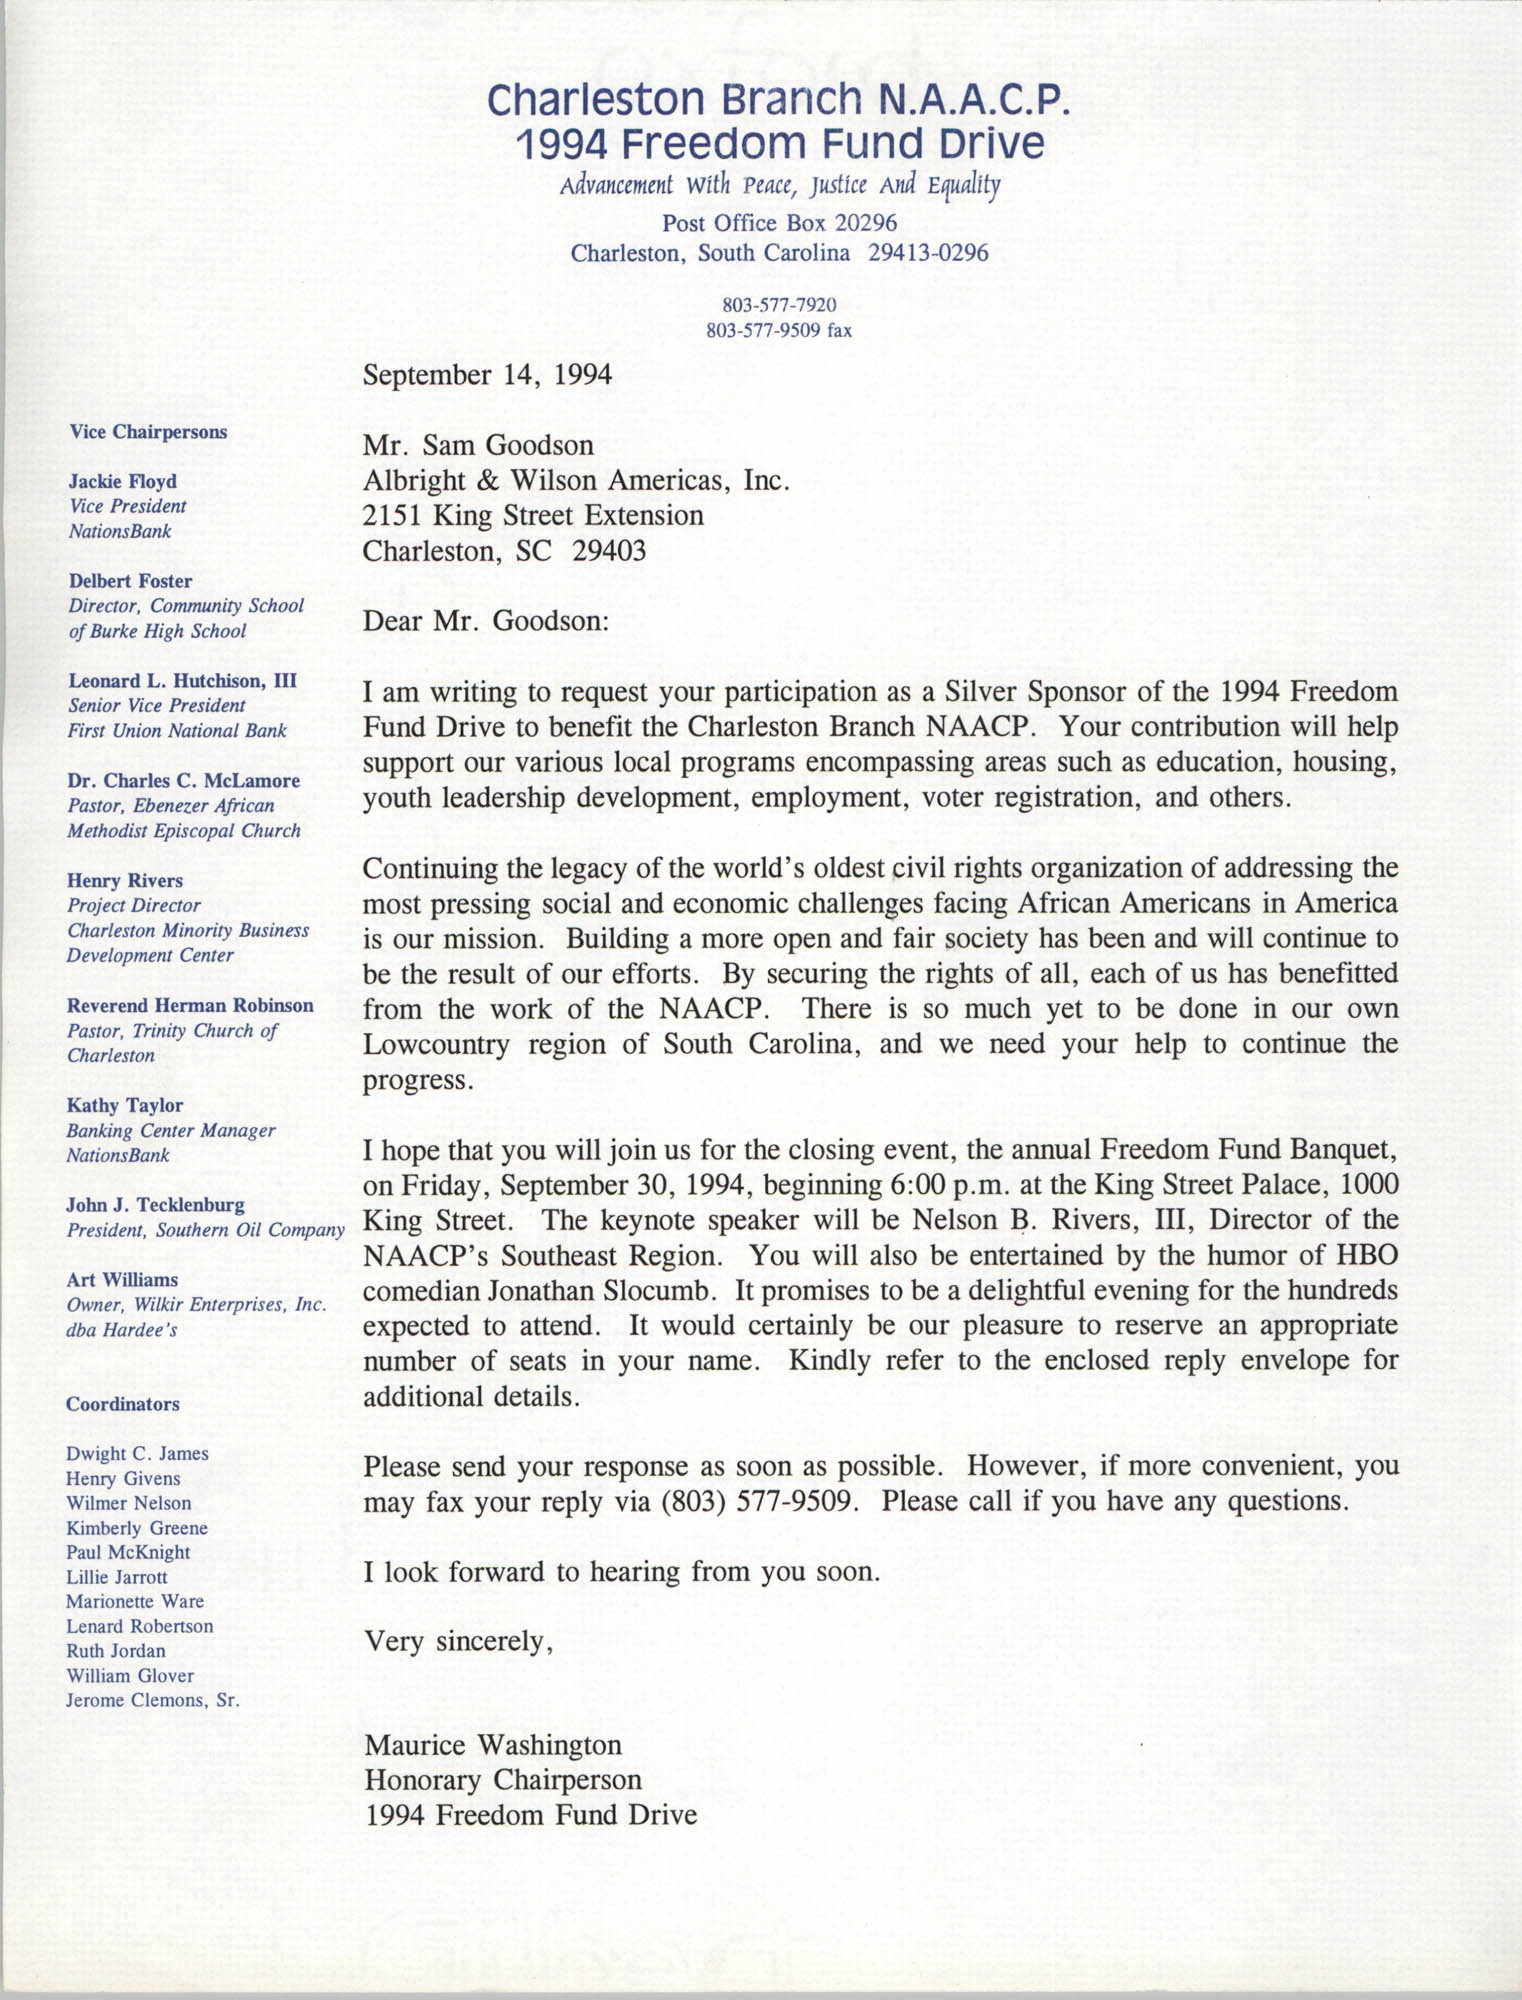 Letter from Maurice Washington to Sam Goodson, September 14, 1994